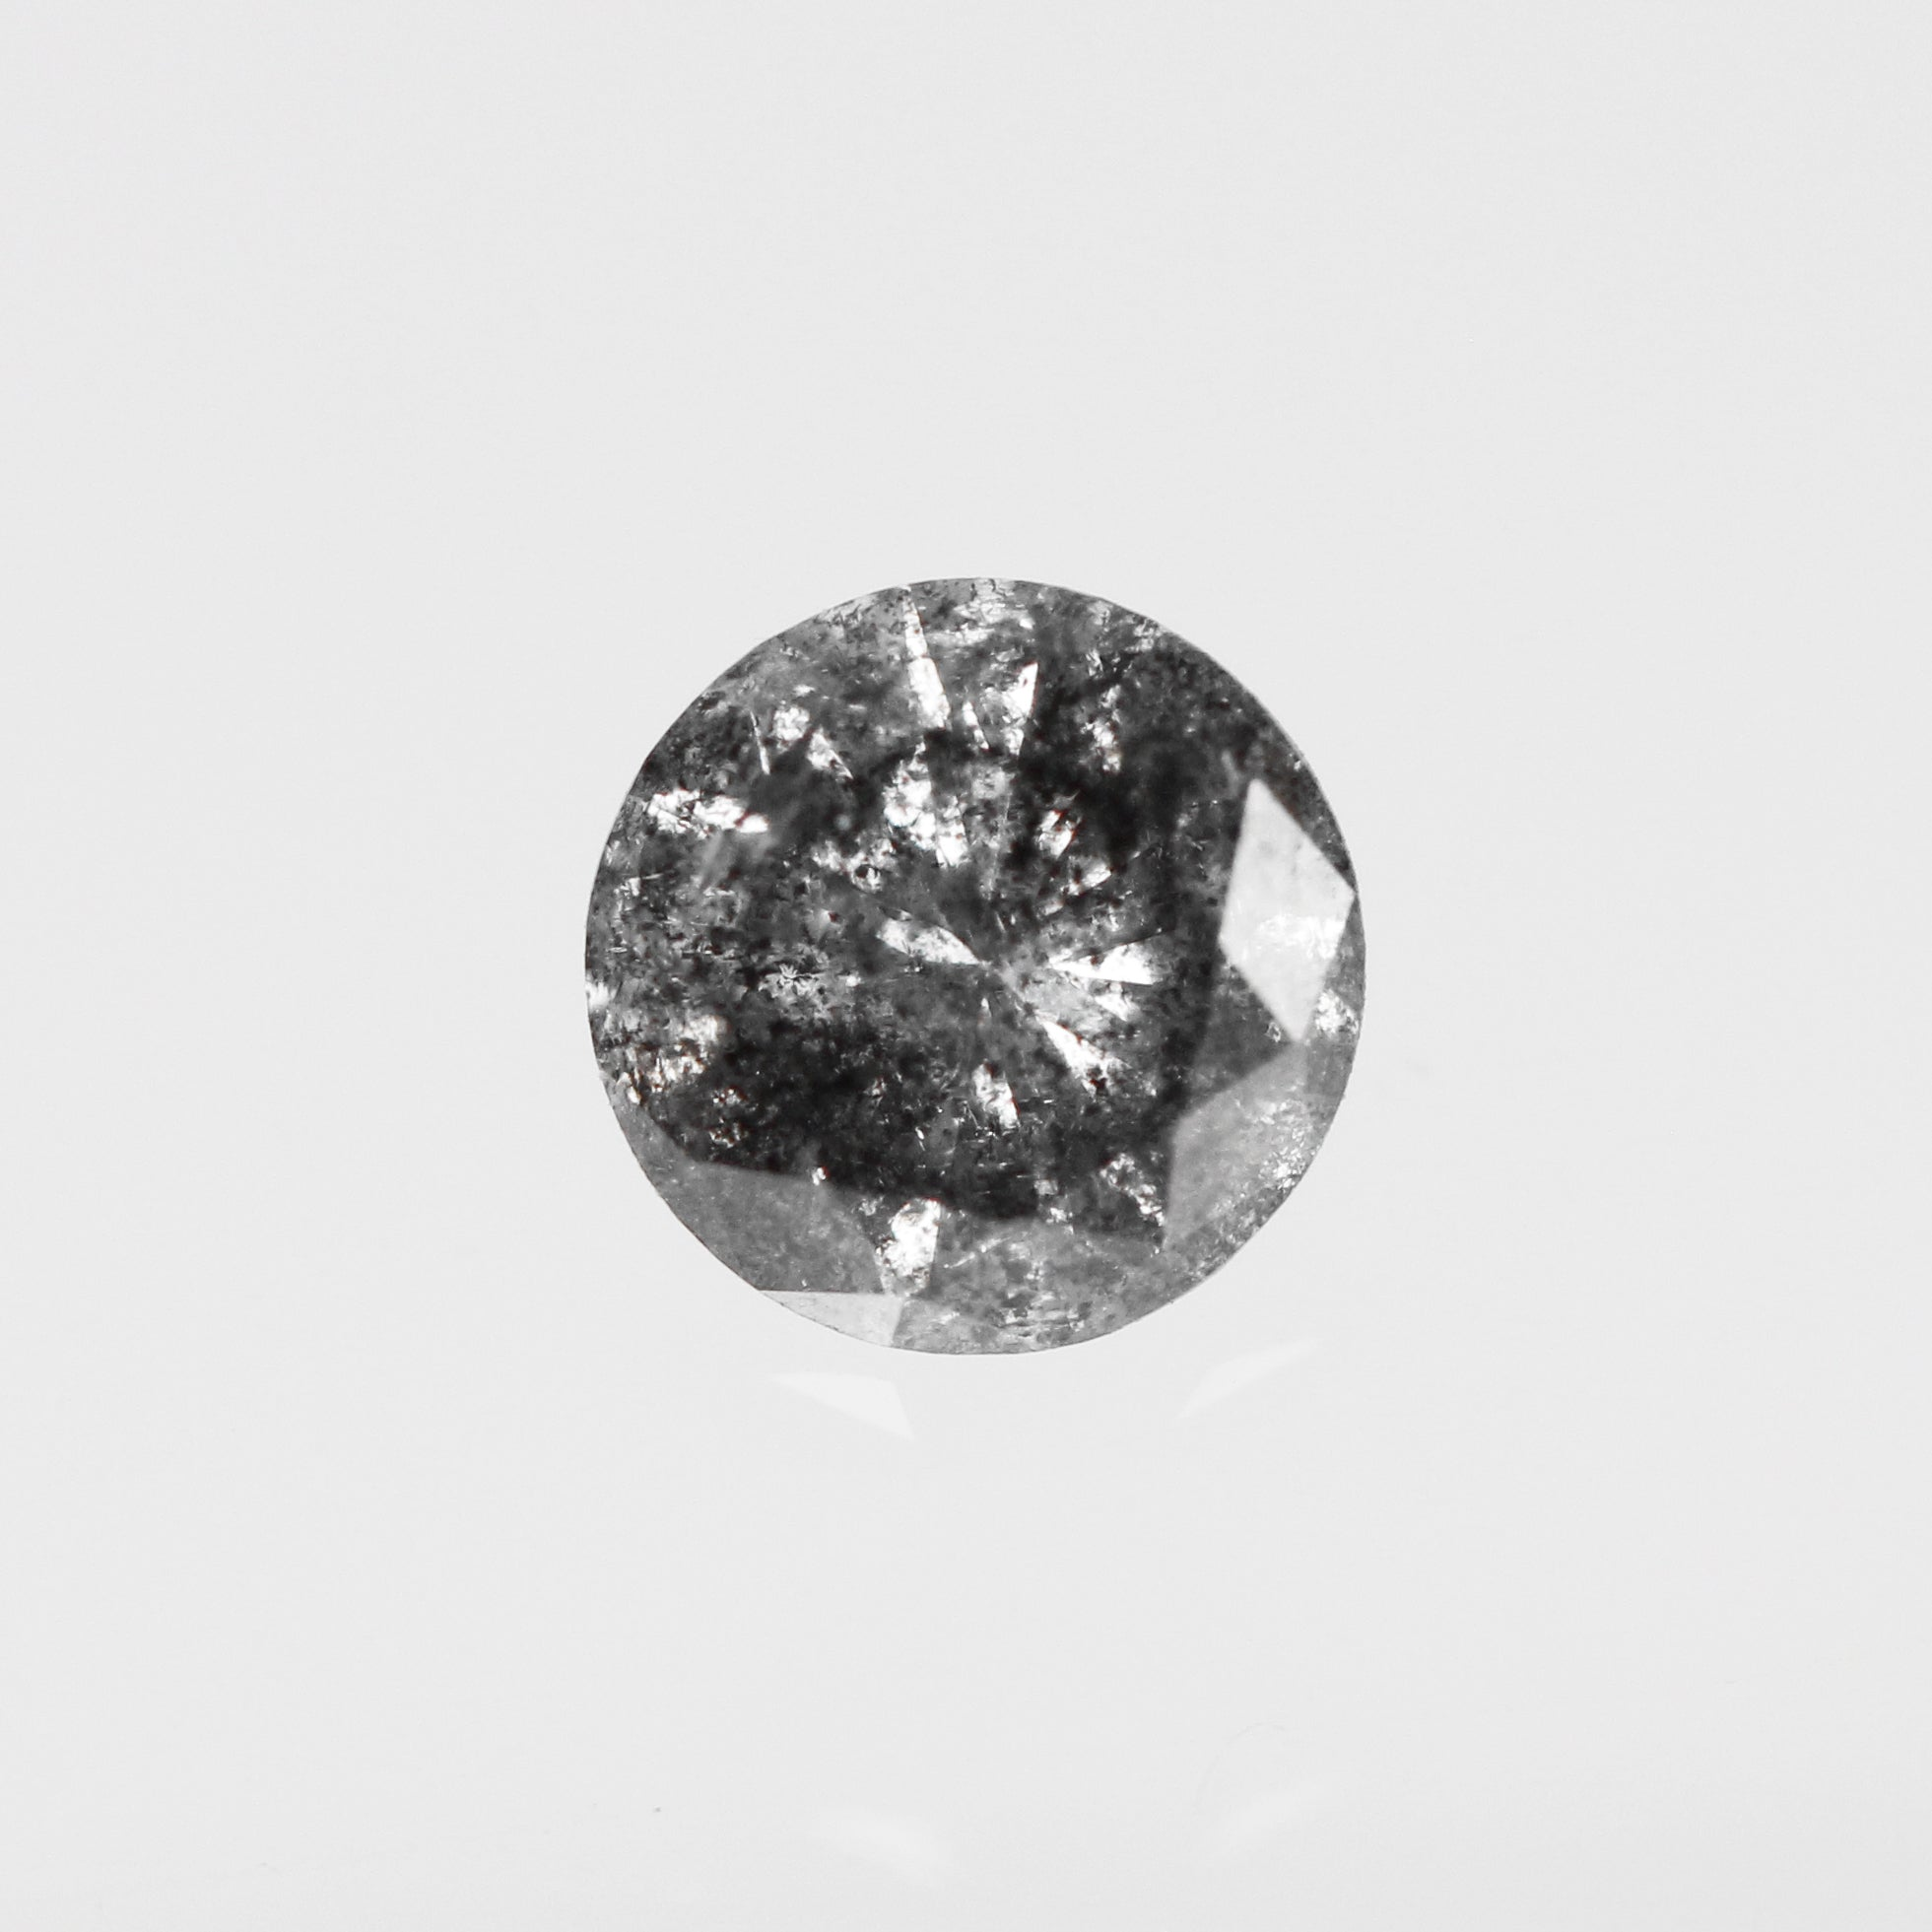 .84 Carat Round Celestial Diamond for Custom Work- Inventory Code RBSB84 - BC - Celestial Diamonds ® by Midwinter Co.